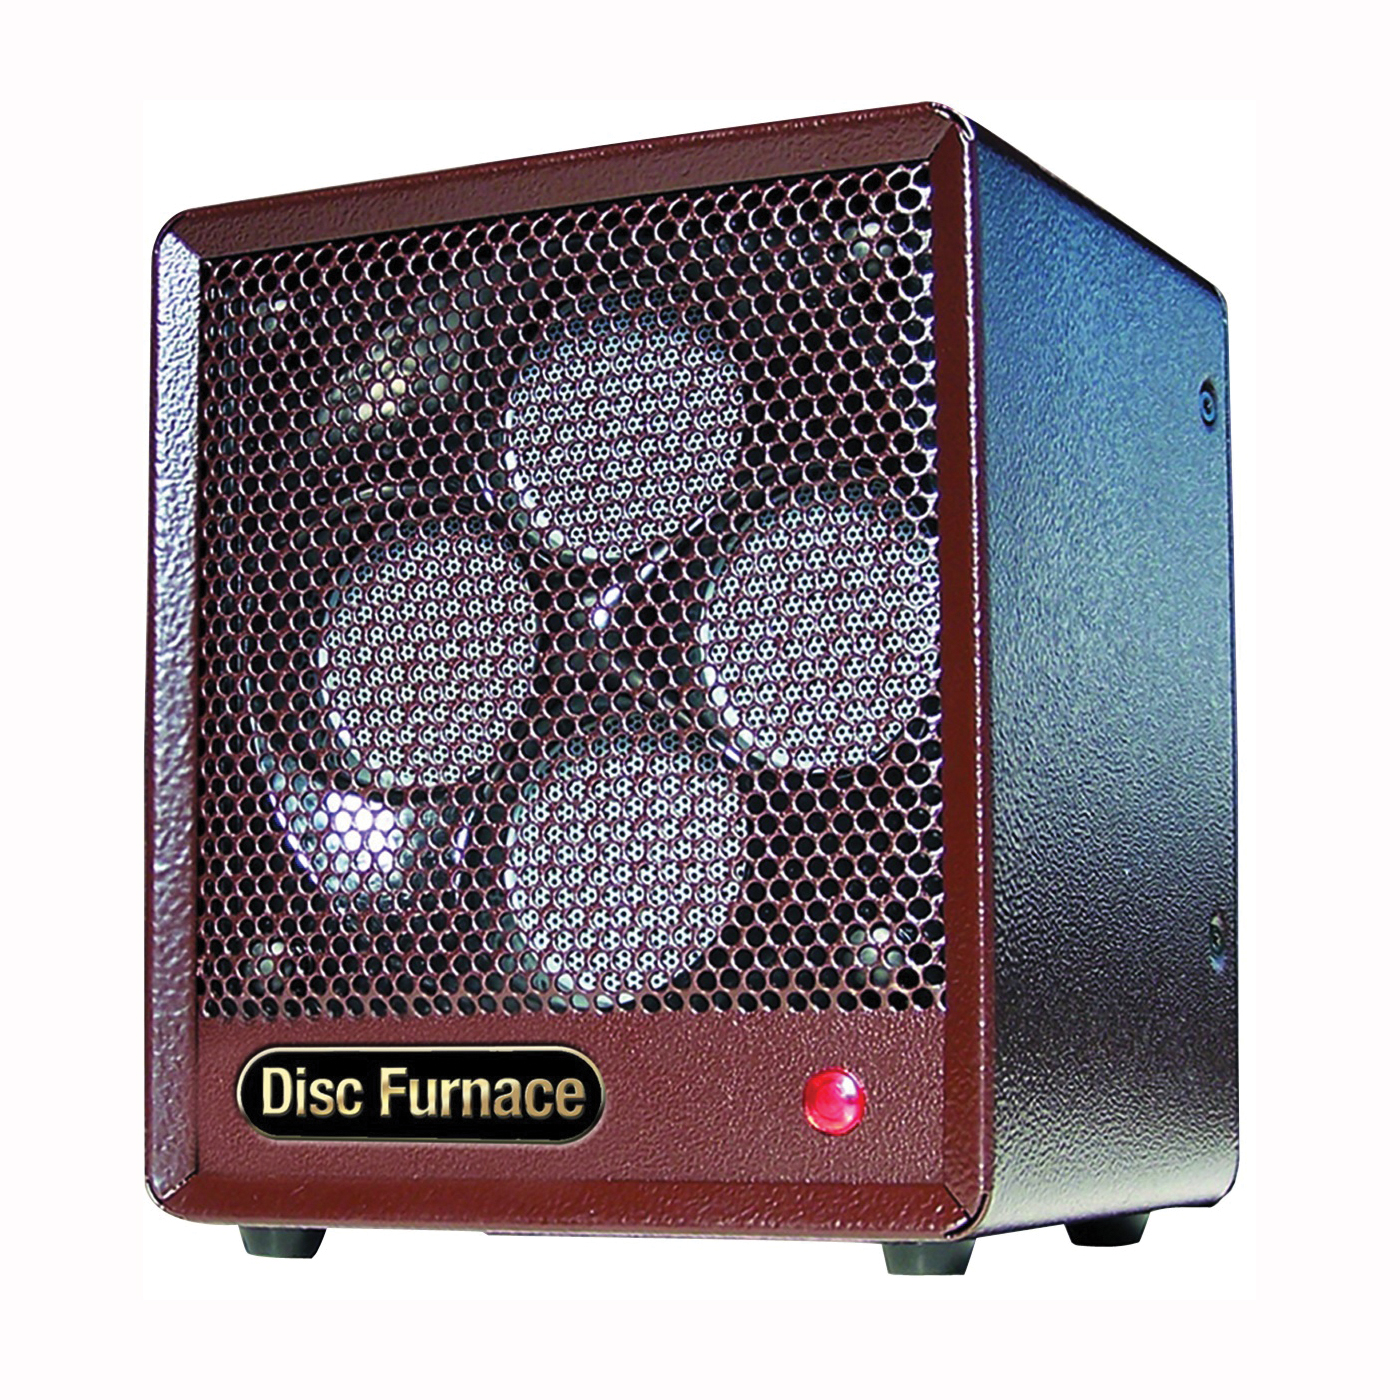 Picture of Comfort Glow BDISC6 Electric Disc Heater, 15 A, 120 V, 1500 W, 5200 Btu Heating, 600 sq-ft Heating Area, Brown